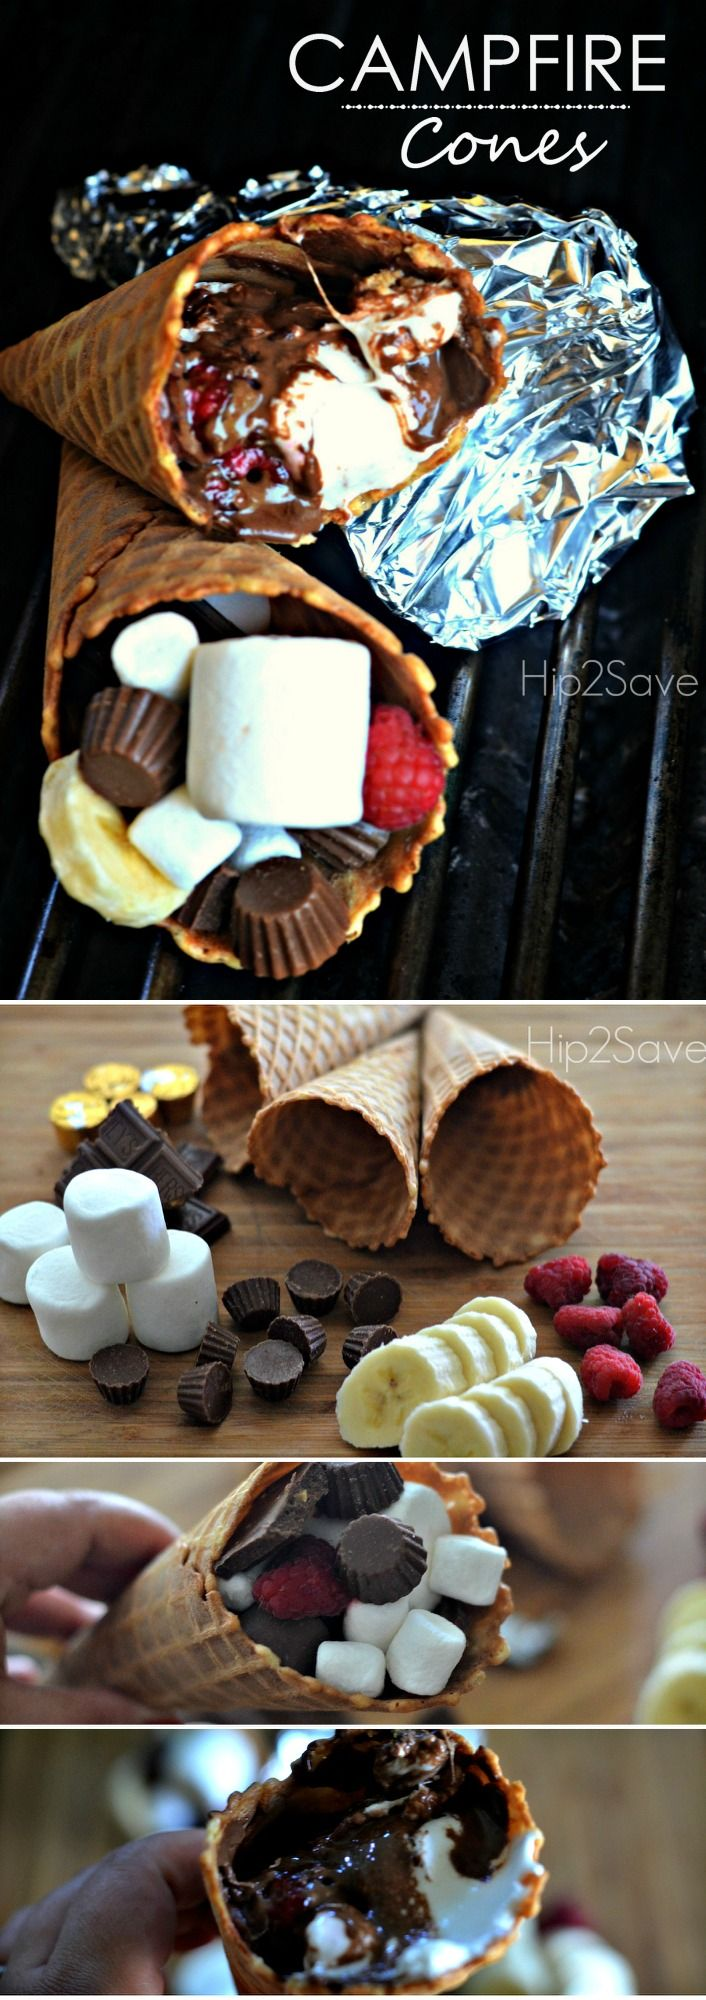 Campfire Cones filled with marshmallows, chocolate, bananas and so much more. You'll love this treat. (Fun & Easy Summer Dessert) – Hip2Save.com